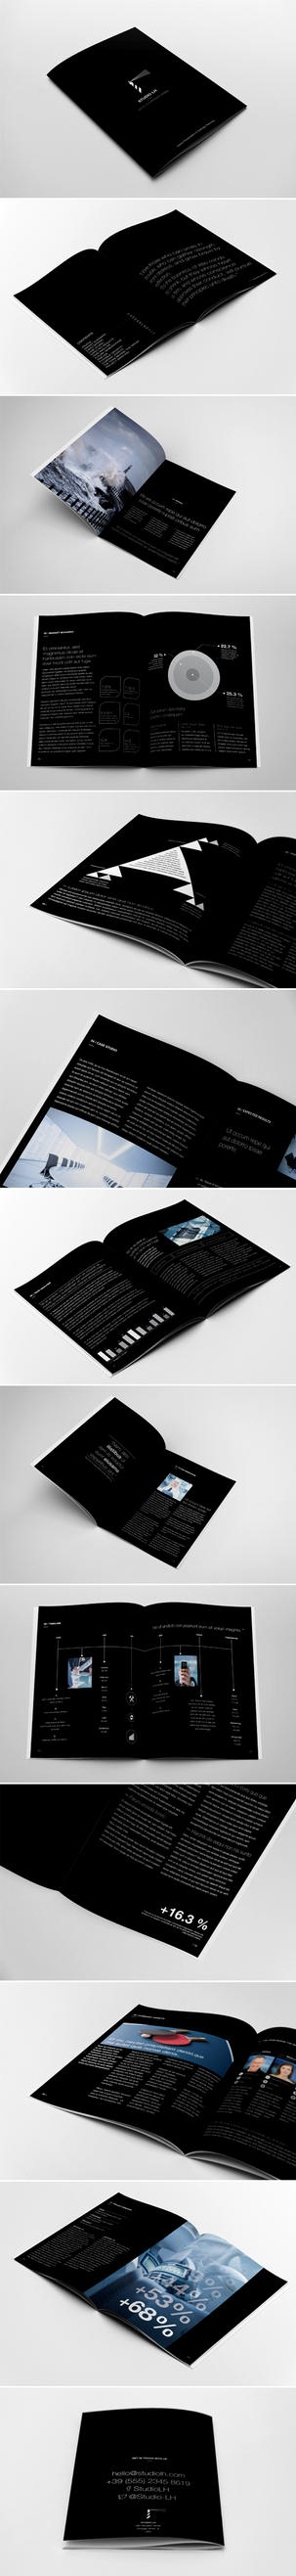 Annual Report Brochure Template by andre2886